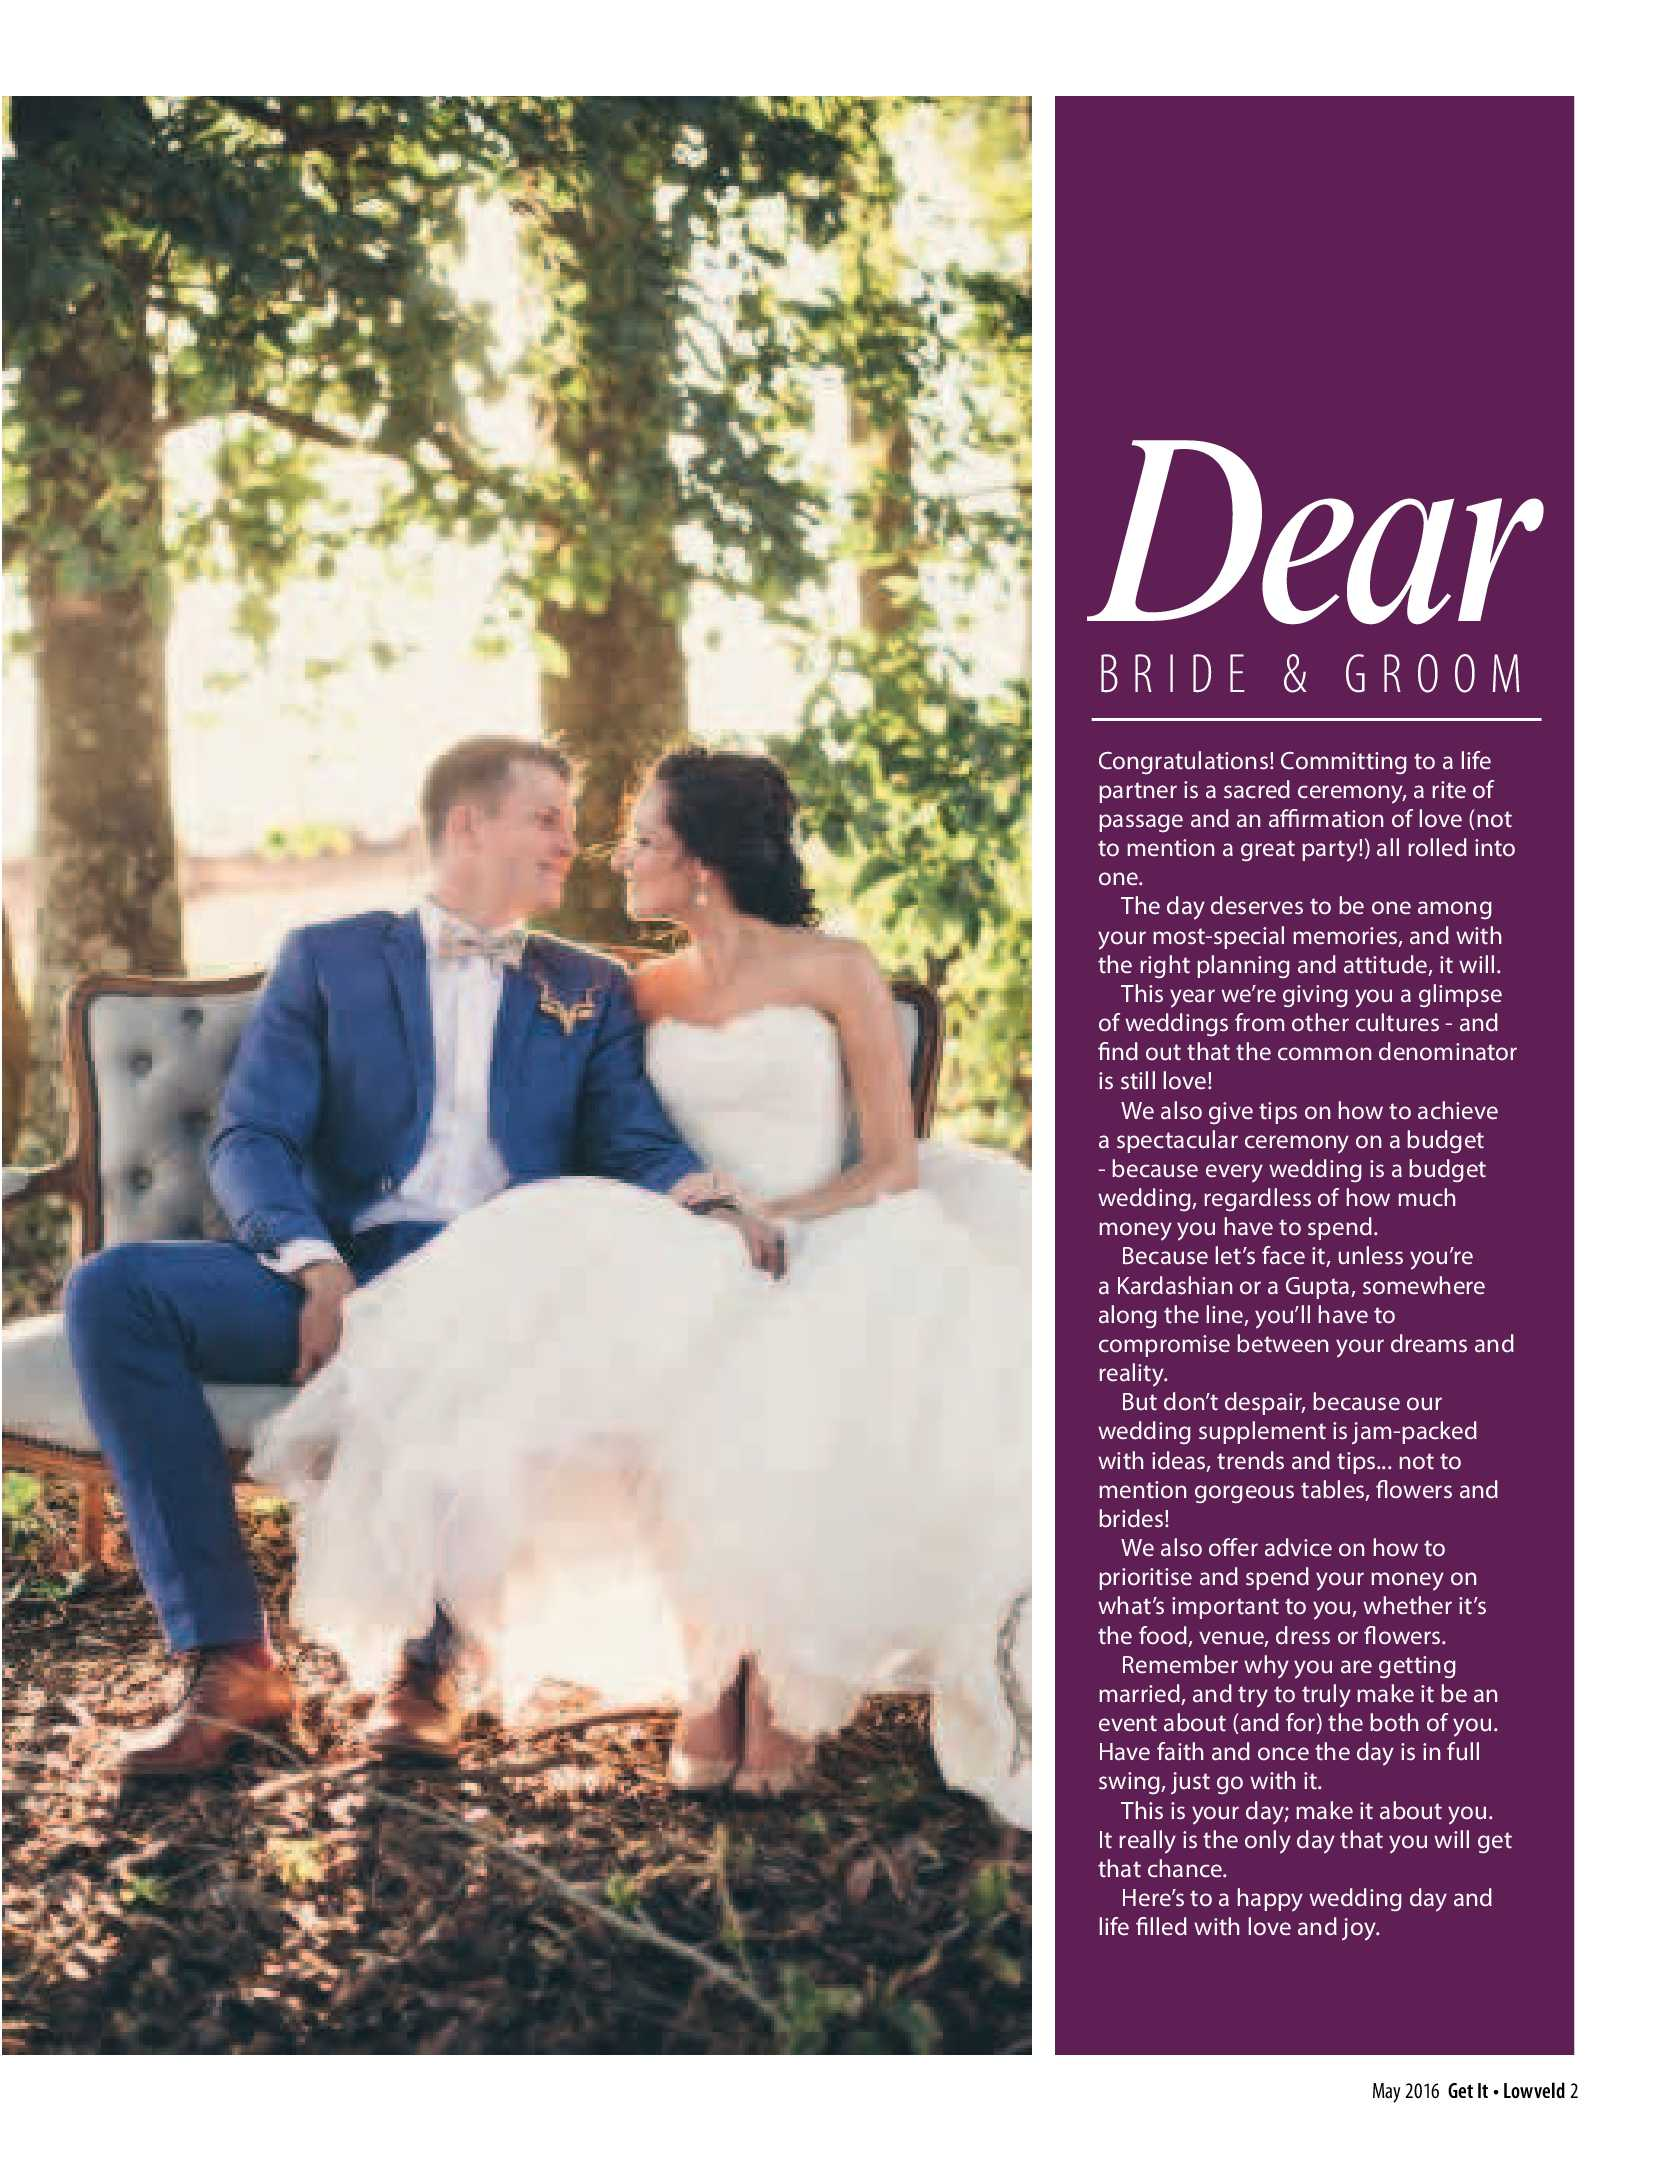 get-lowveld-bridal-supplement-2016-epapers-page-3